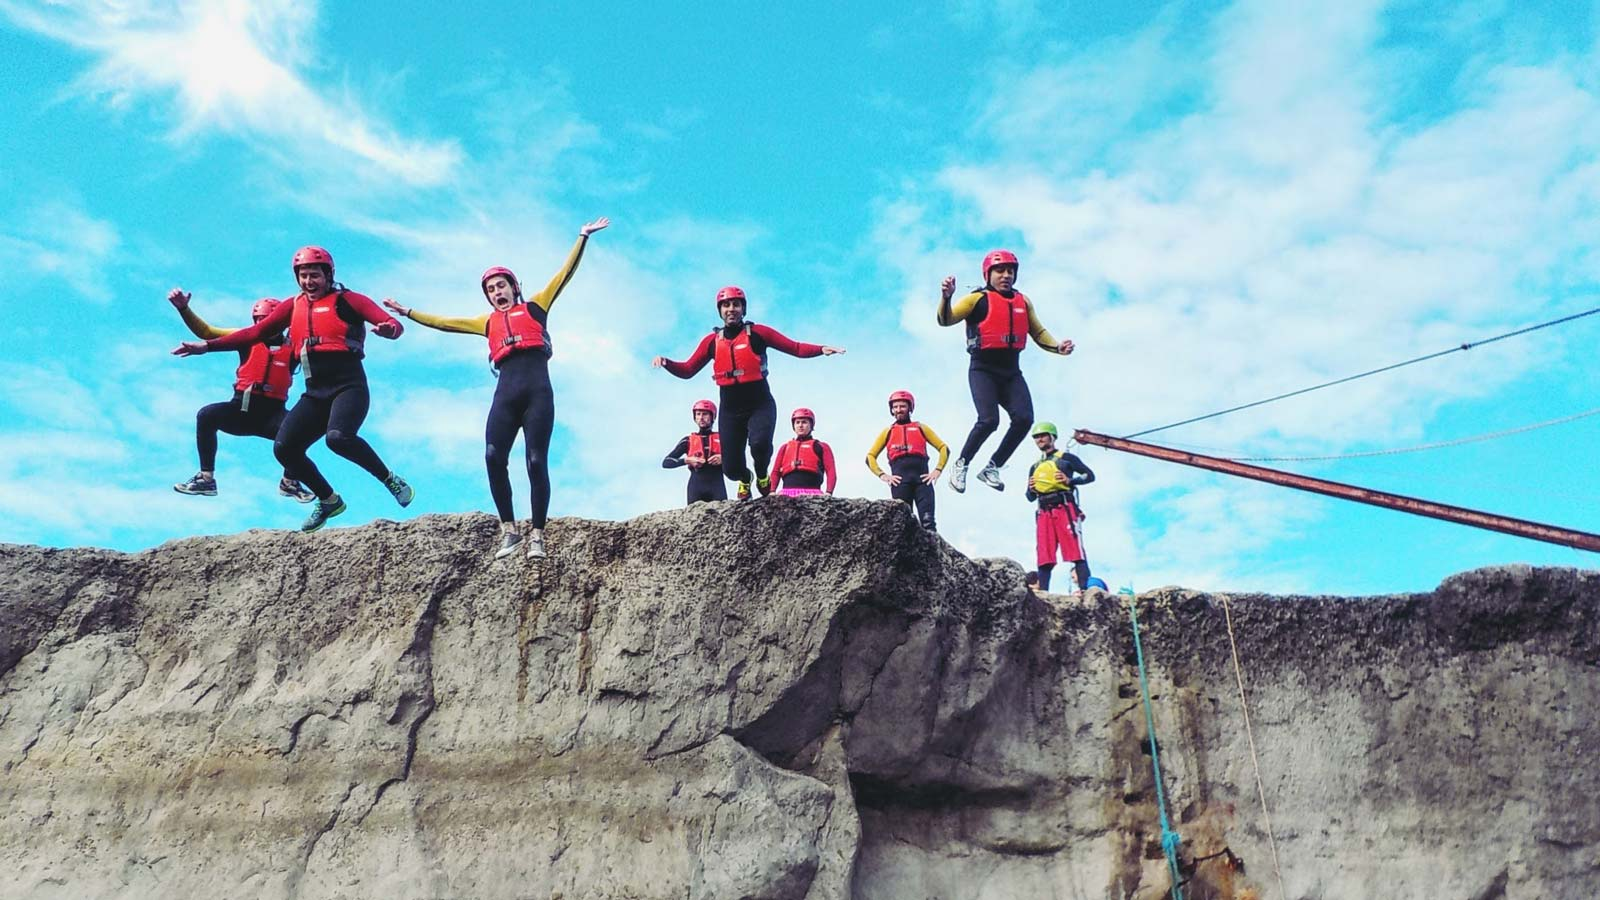 adventure4all-group-coasteering-jumping